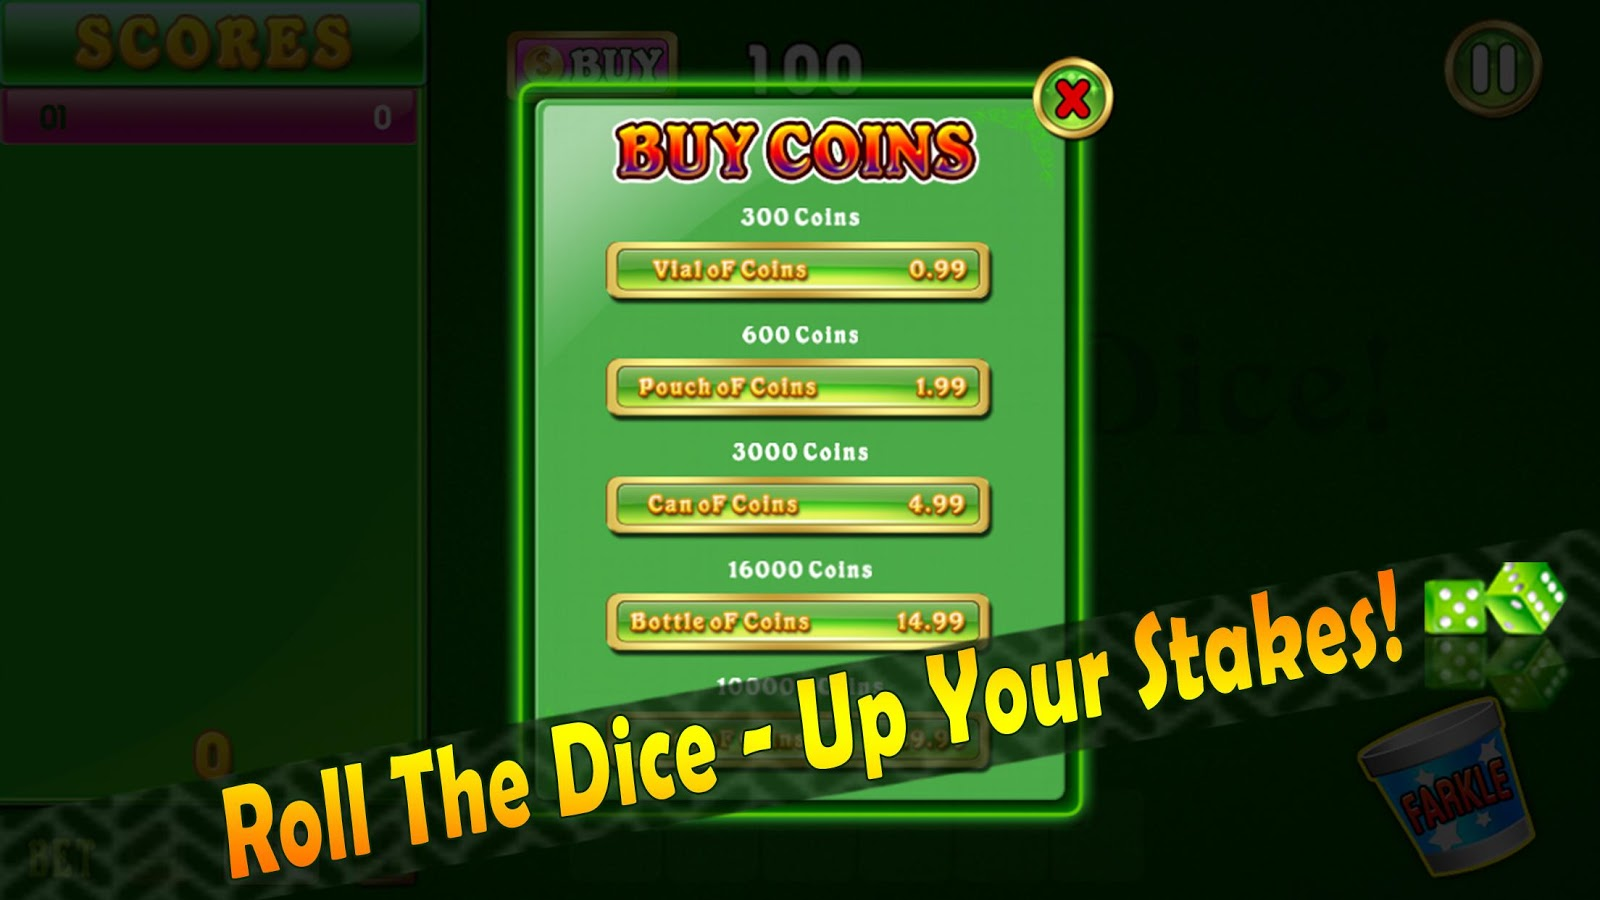 Play Rollercoaster Dice Arcade Games at Casino.com